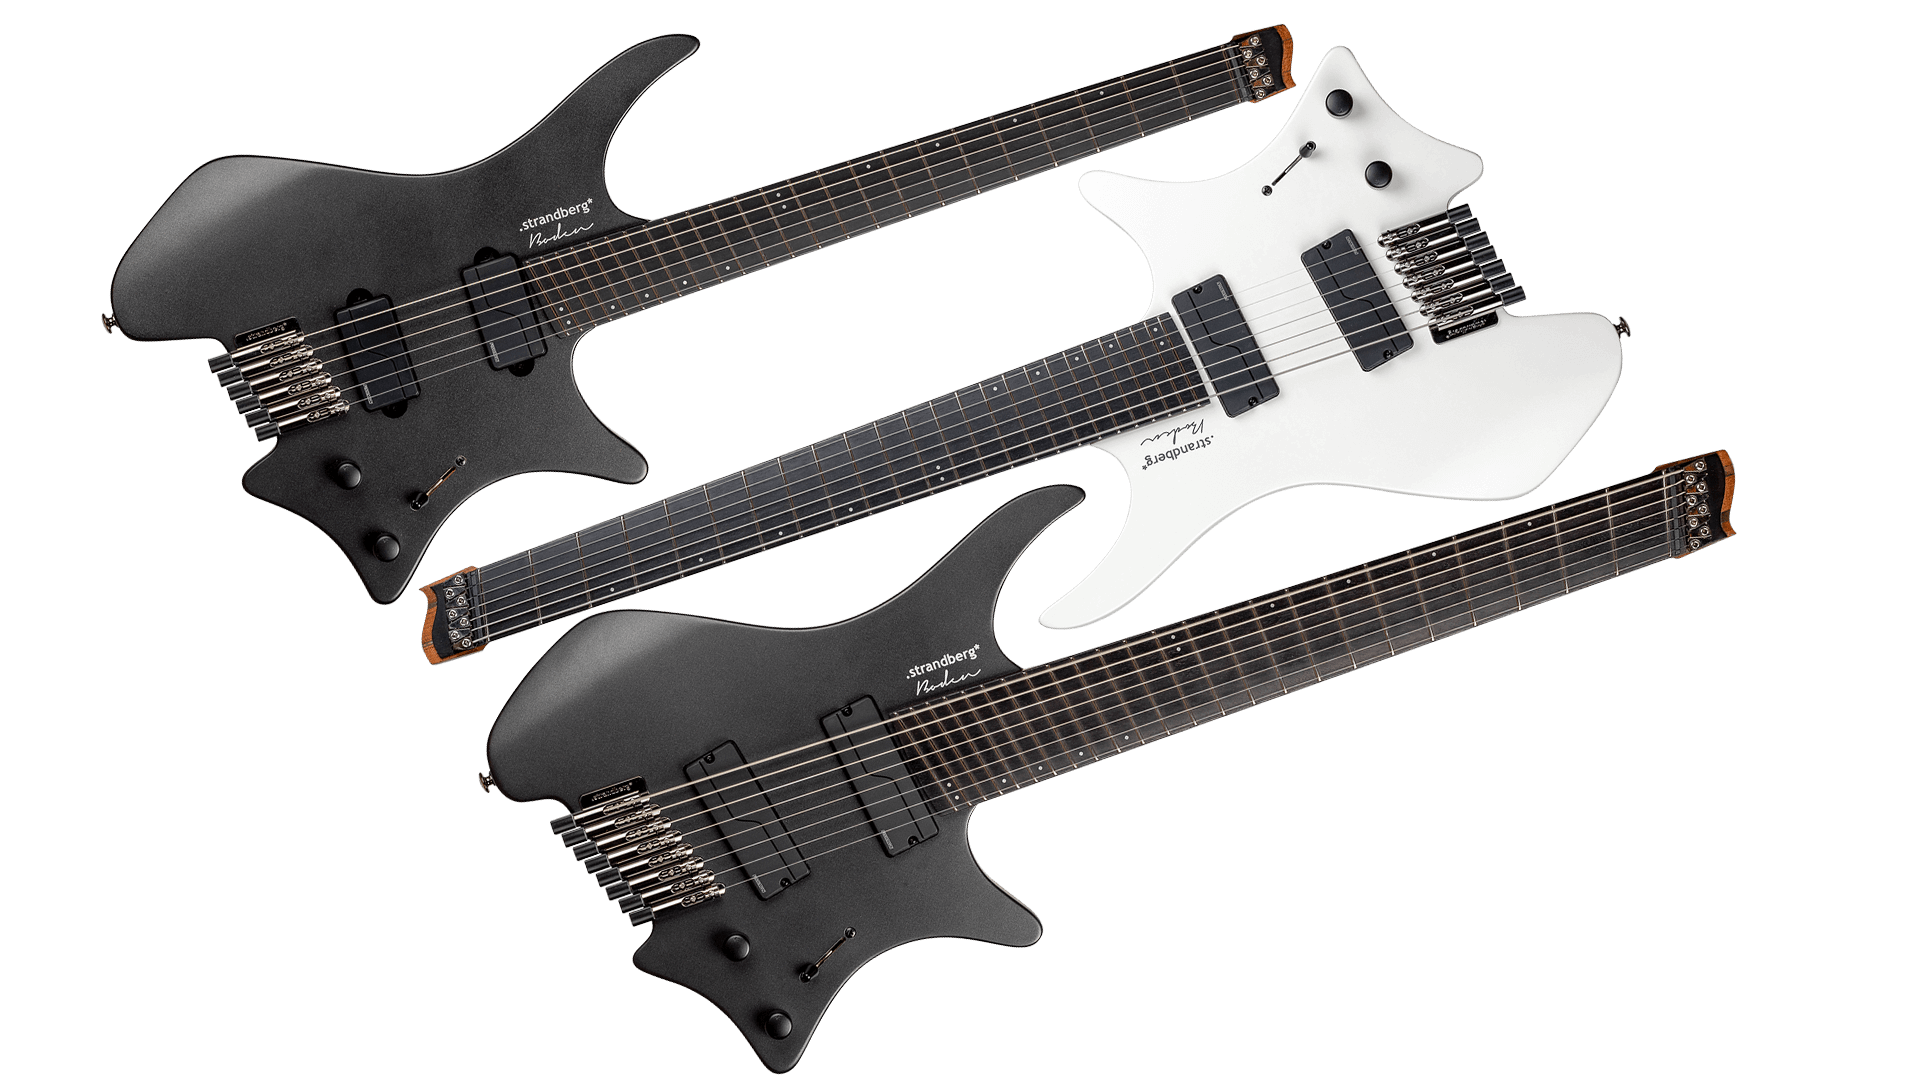 Headless guitars boden metal white and black side by side